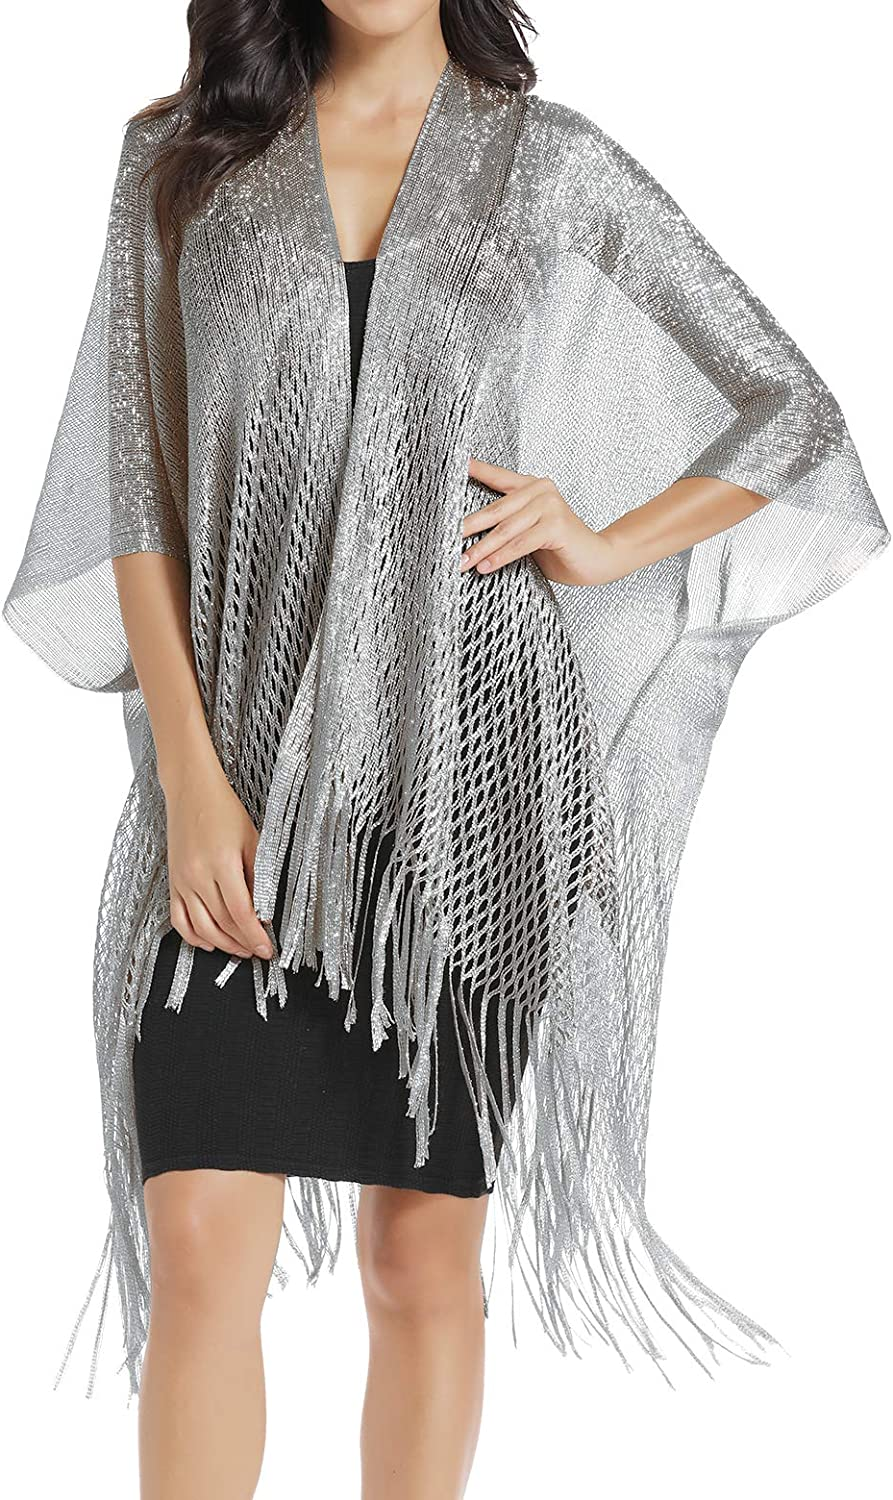 Large Metallic Shawls Wraps...